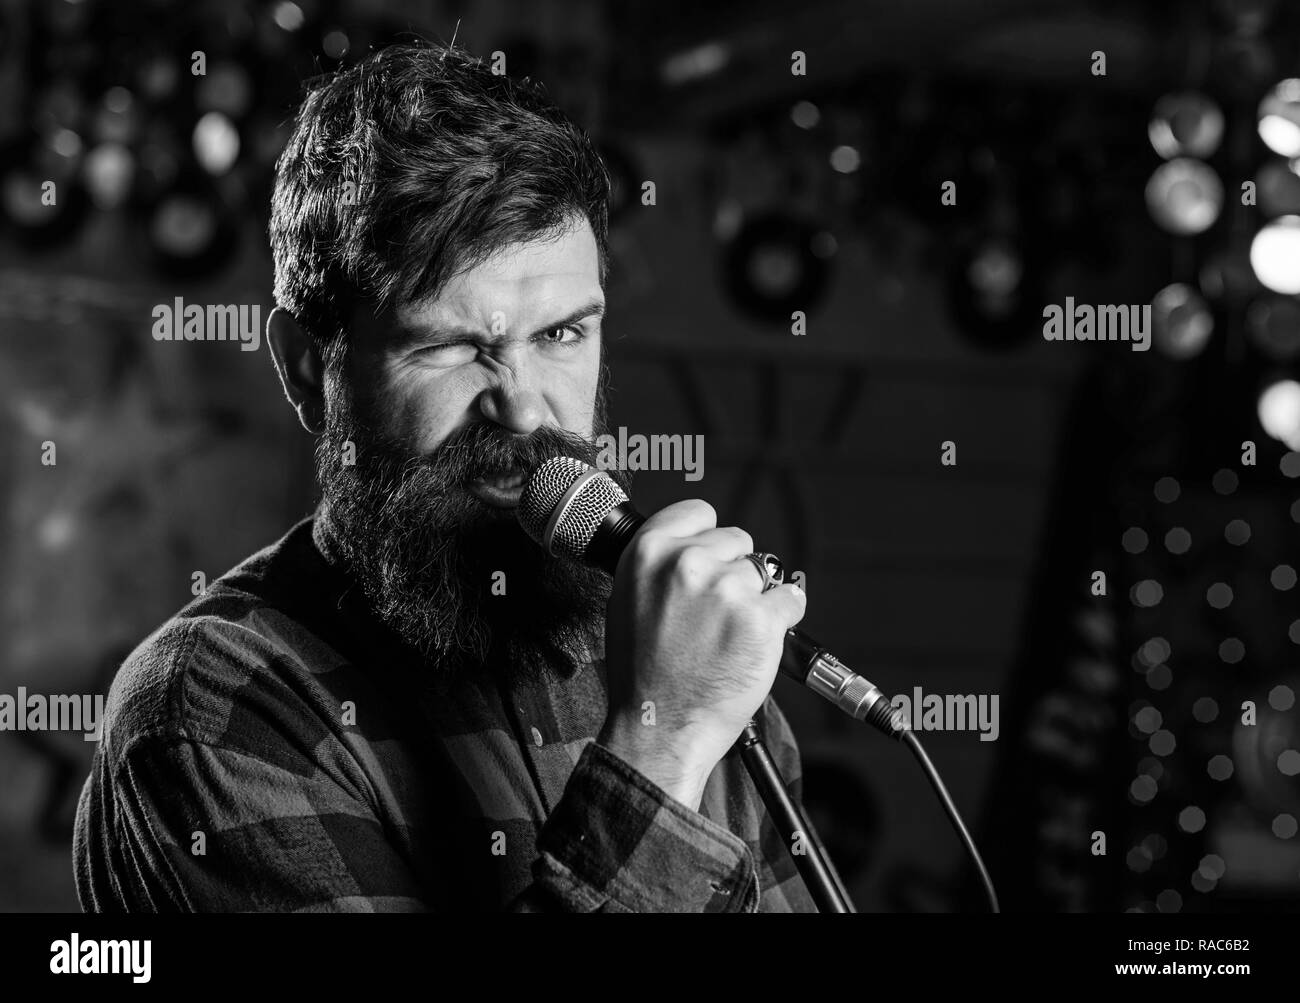 Musician with beard and mustache singing song in karaoke. Rock star concept. Man with enthusiastic face holds microphone, singing song, karaoke club background. Guy likes to sing in aggressive manner. - Stock Image